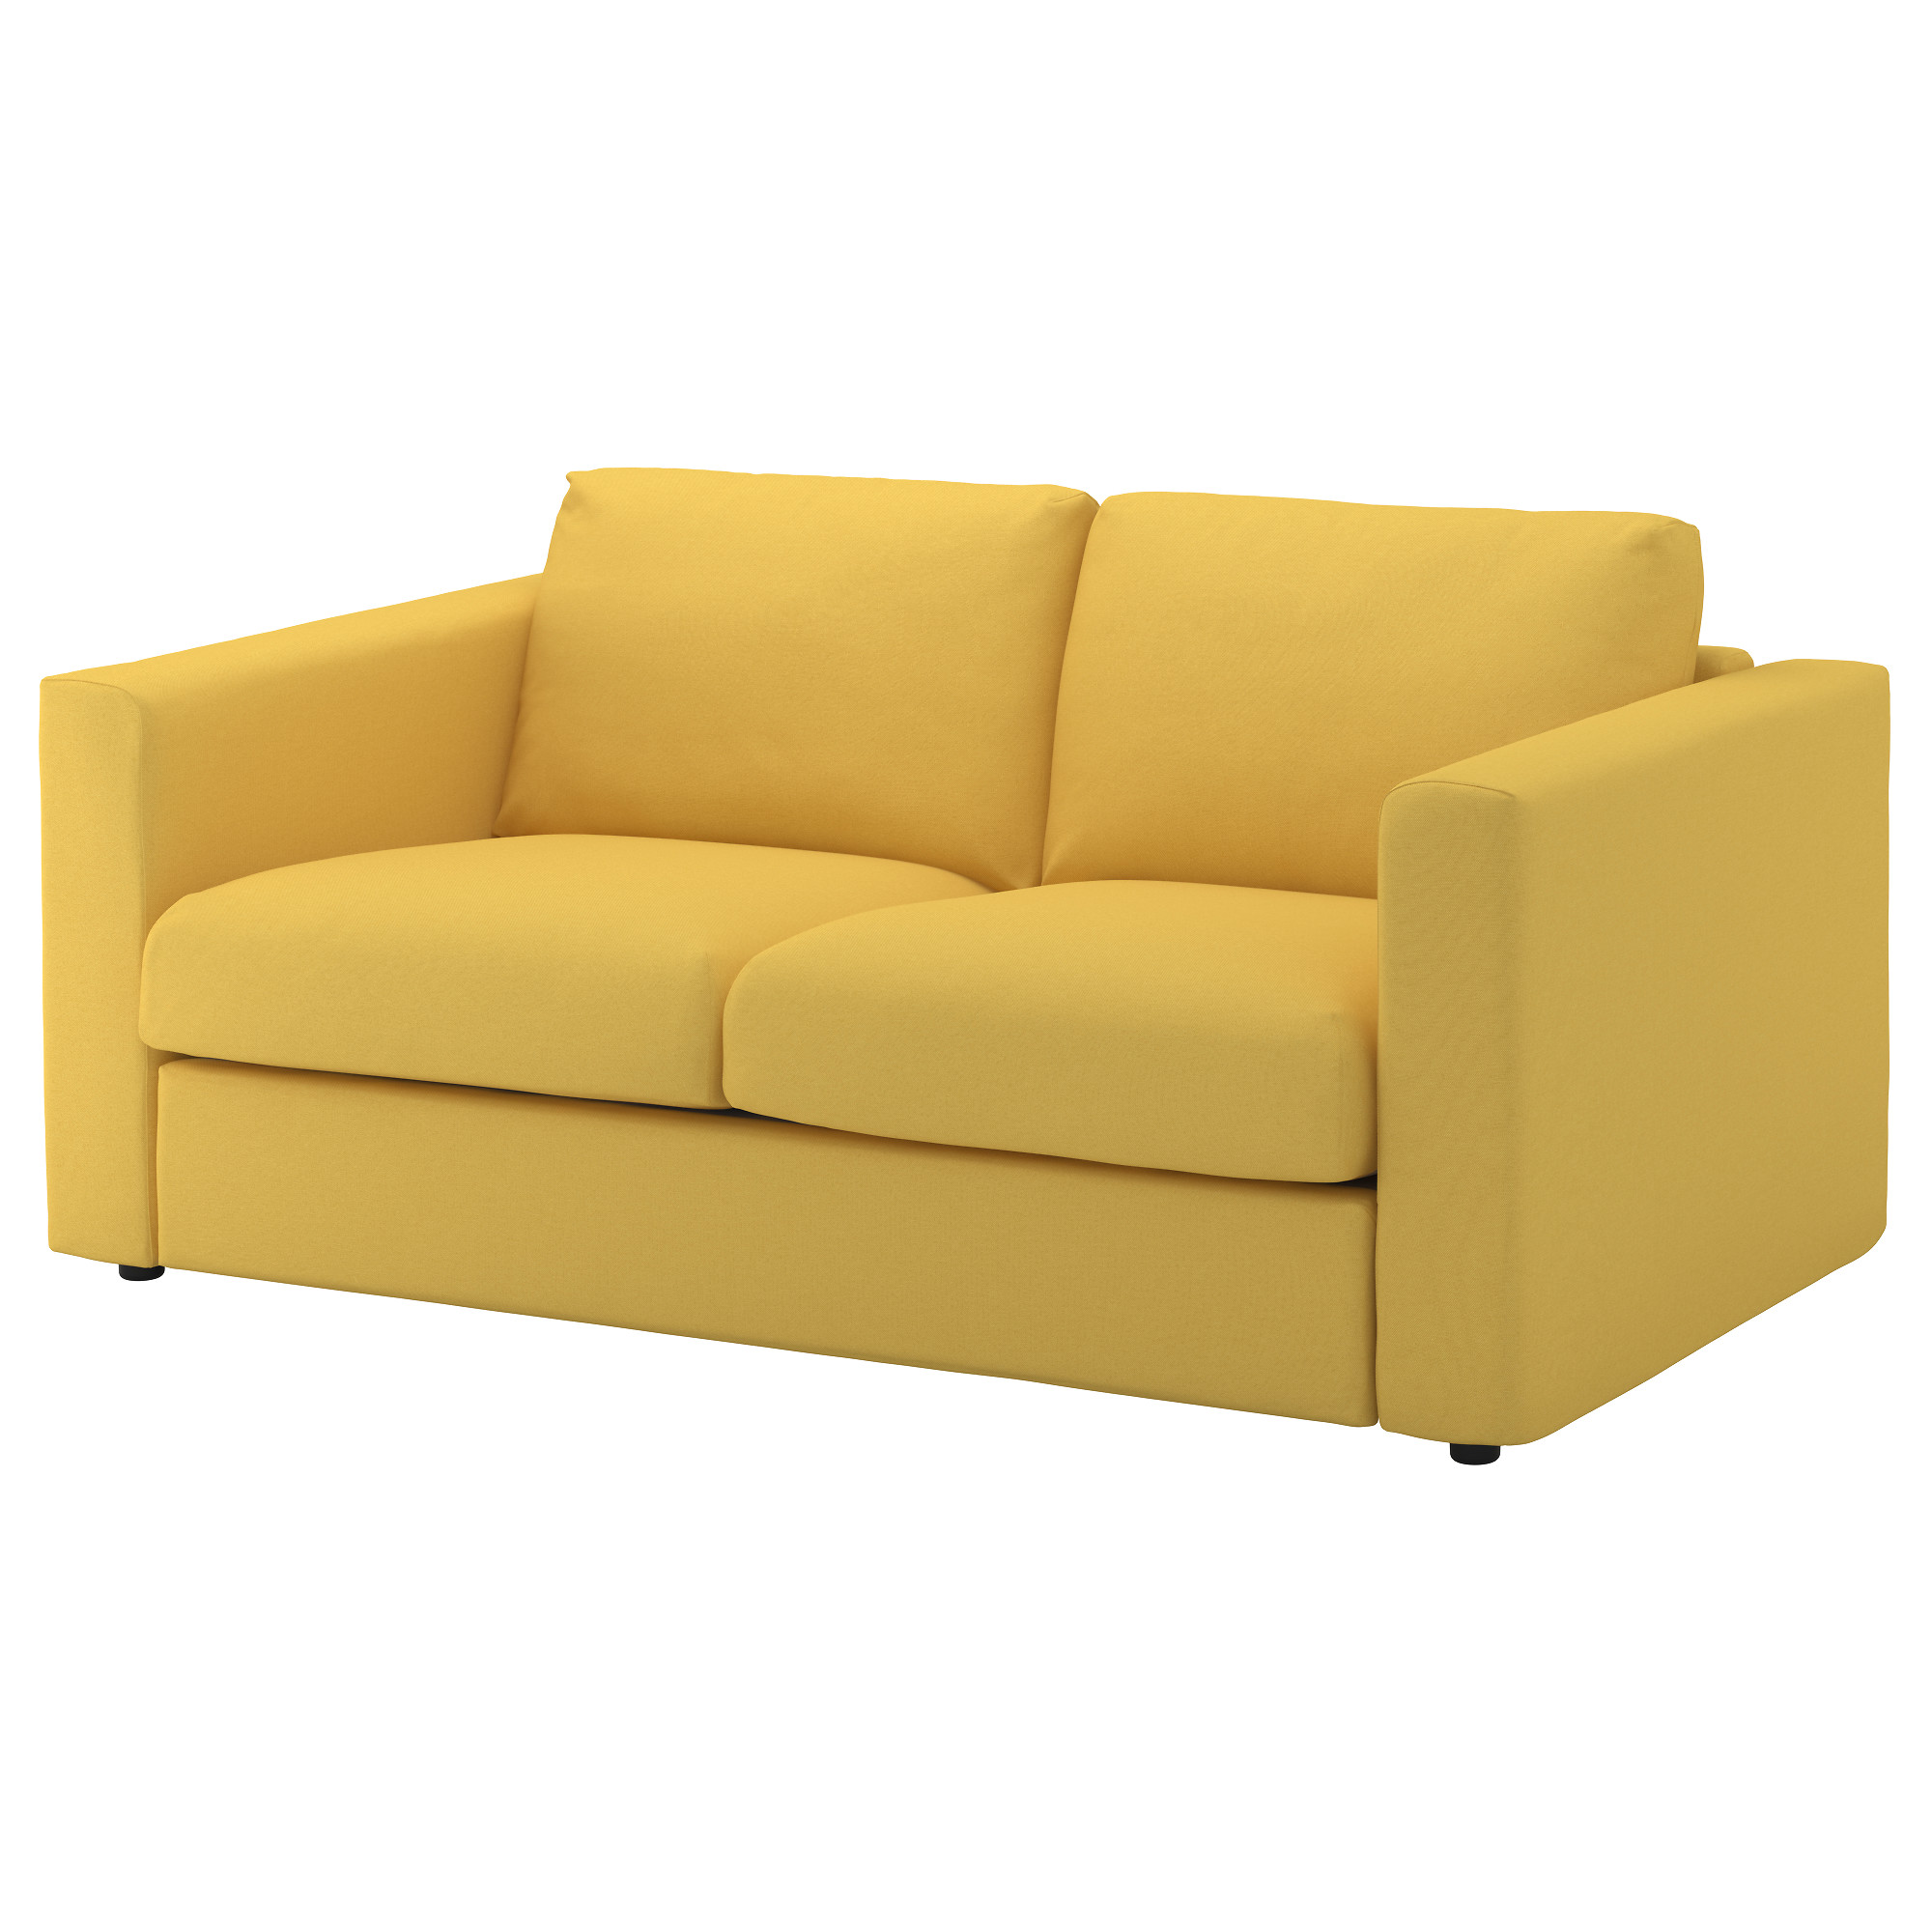 s and stretch slipcovers west layout red full inexpensive sleeper ikea reclining jordan klobo sofa elm warehouse american recliner beige sale for overstock of slipcover ektorp with console idemo loveseat manufacturers furniture size jordans cover